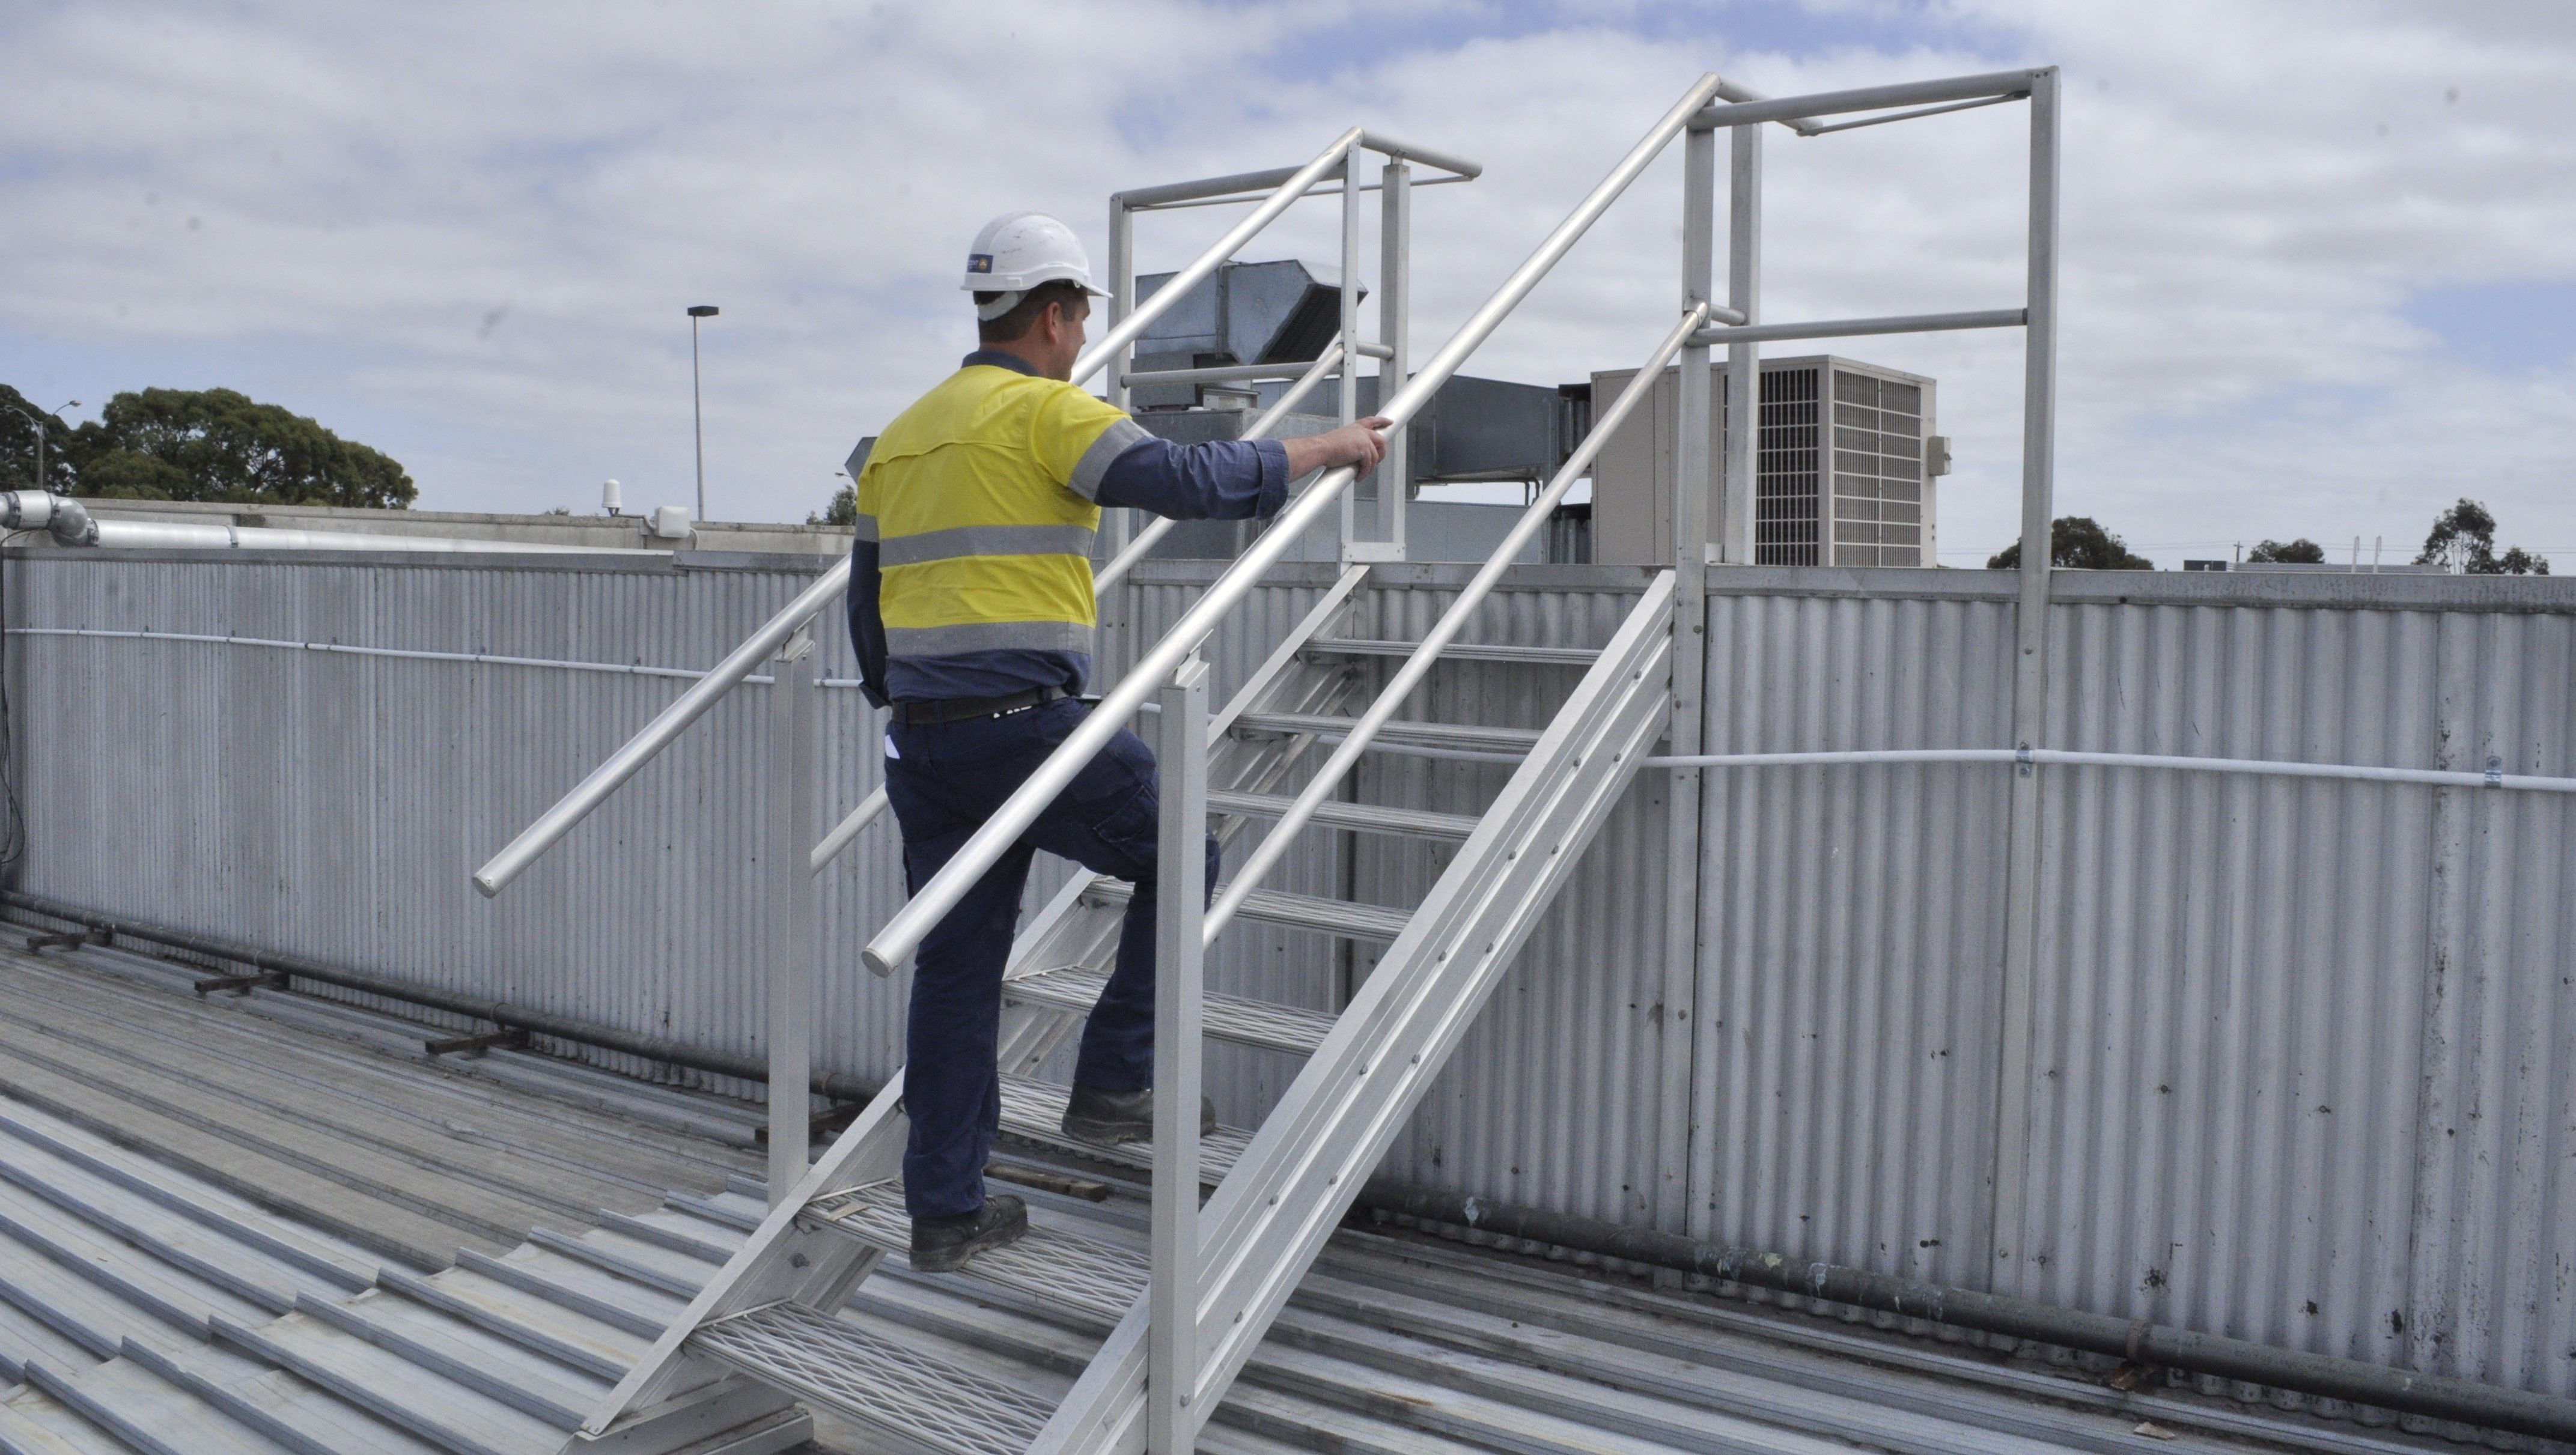 Aluminium Stairway systems with guardrail both sides